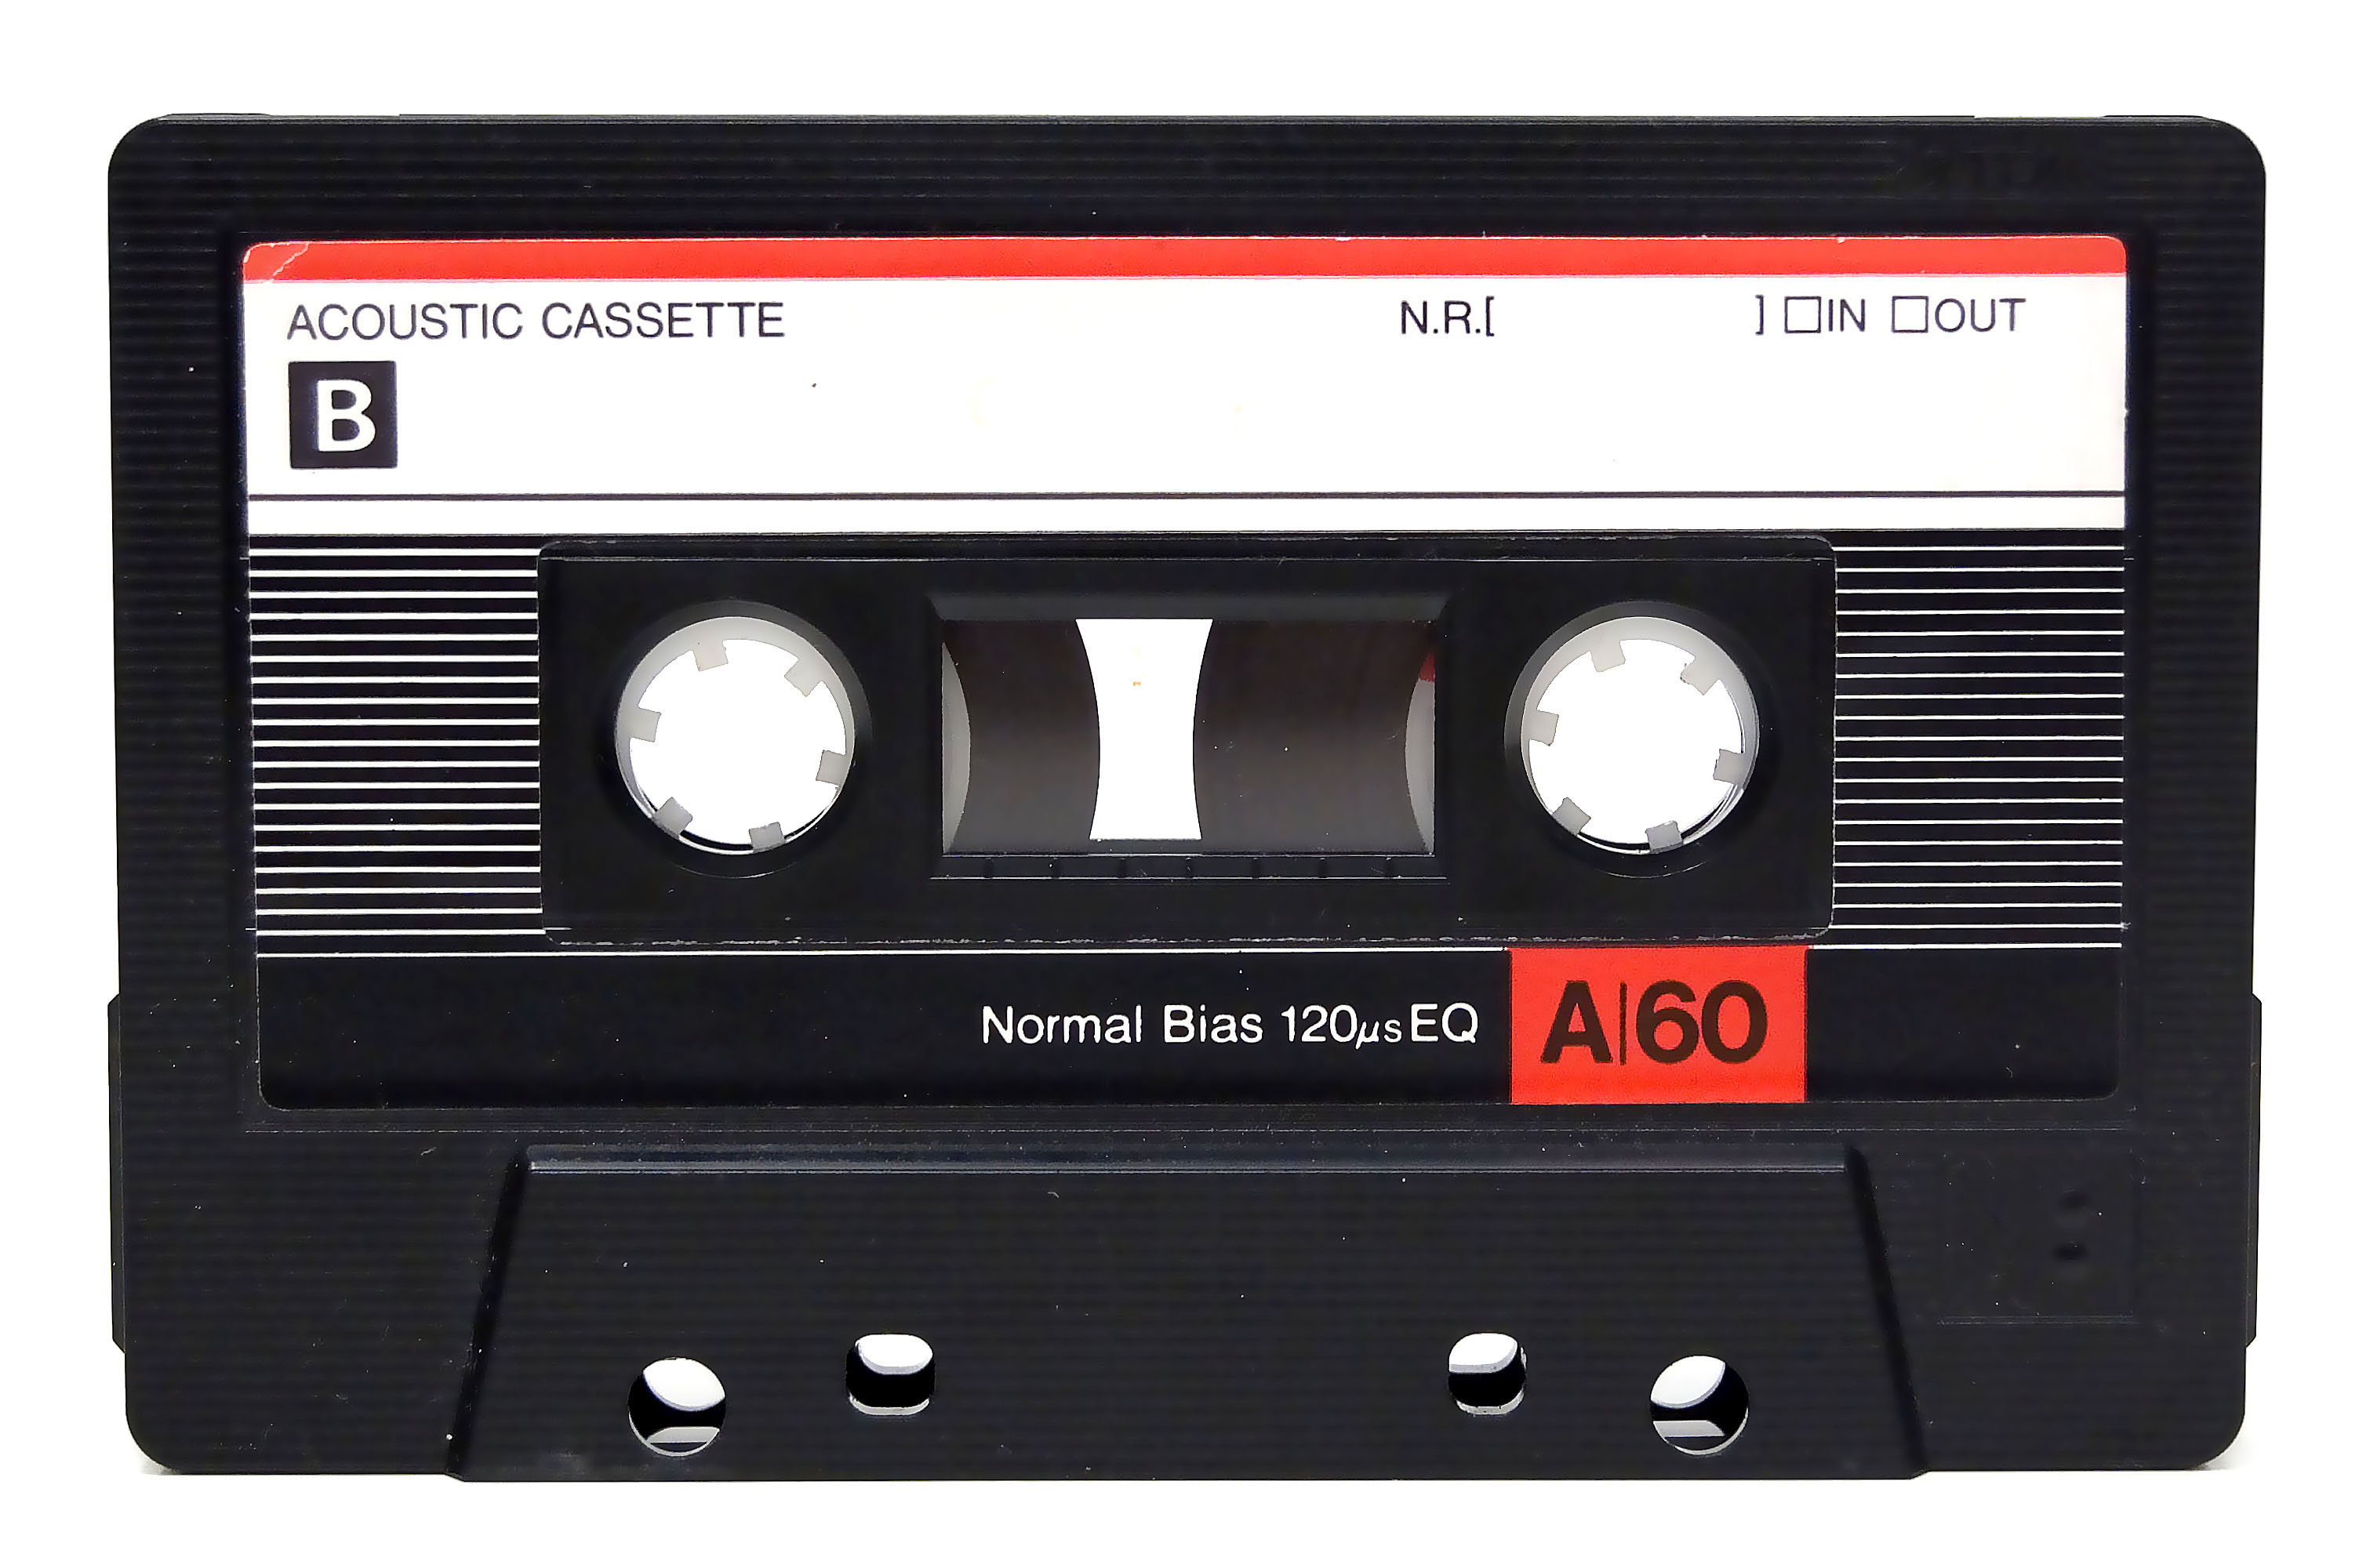 Audio Cassette Tape, 1993. - Casette HD PNG